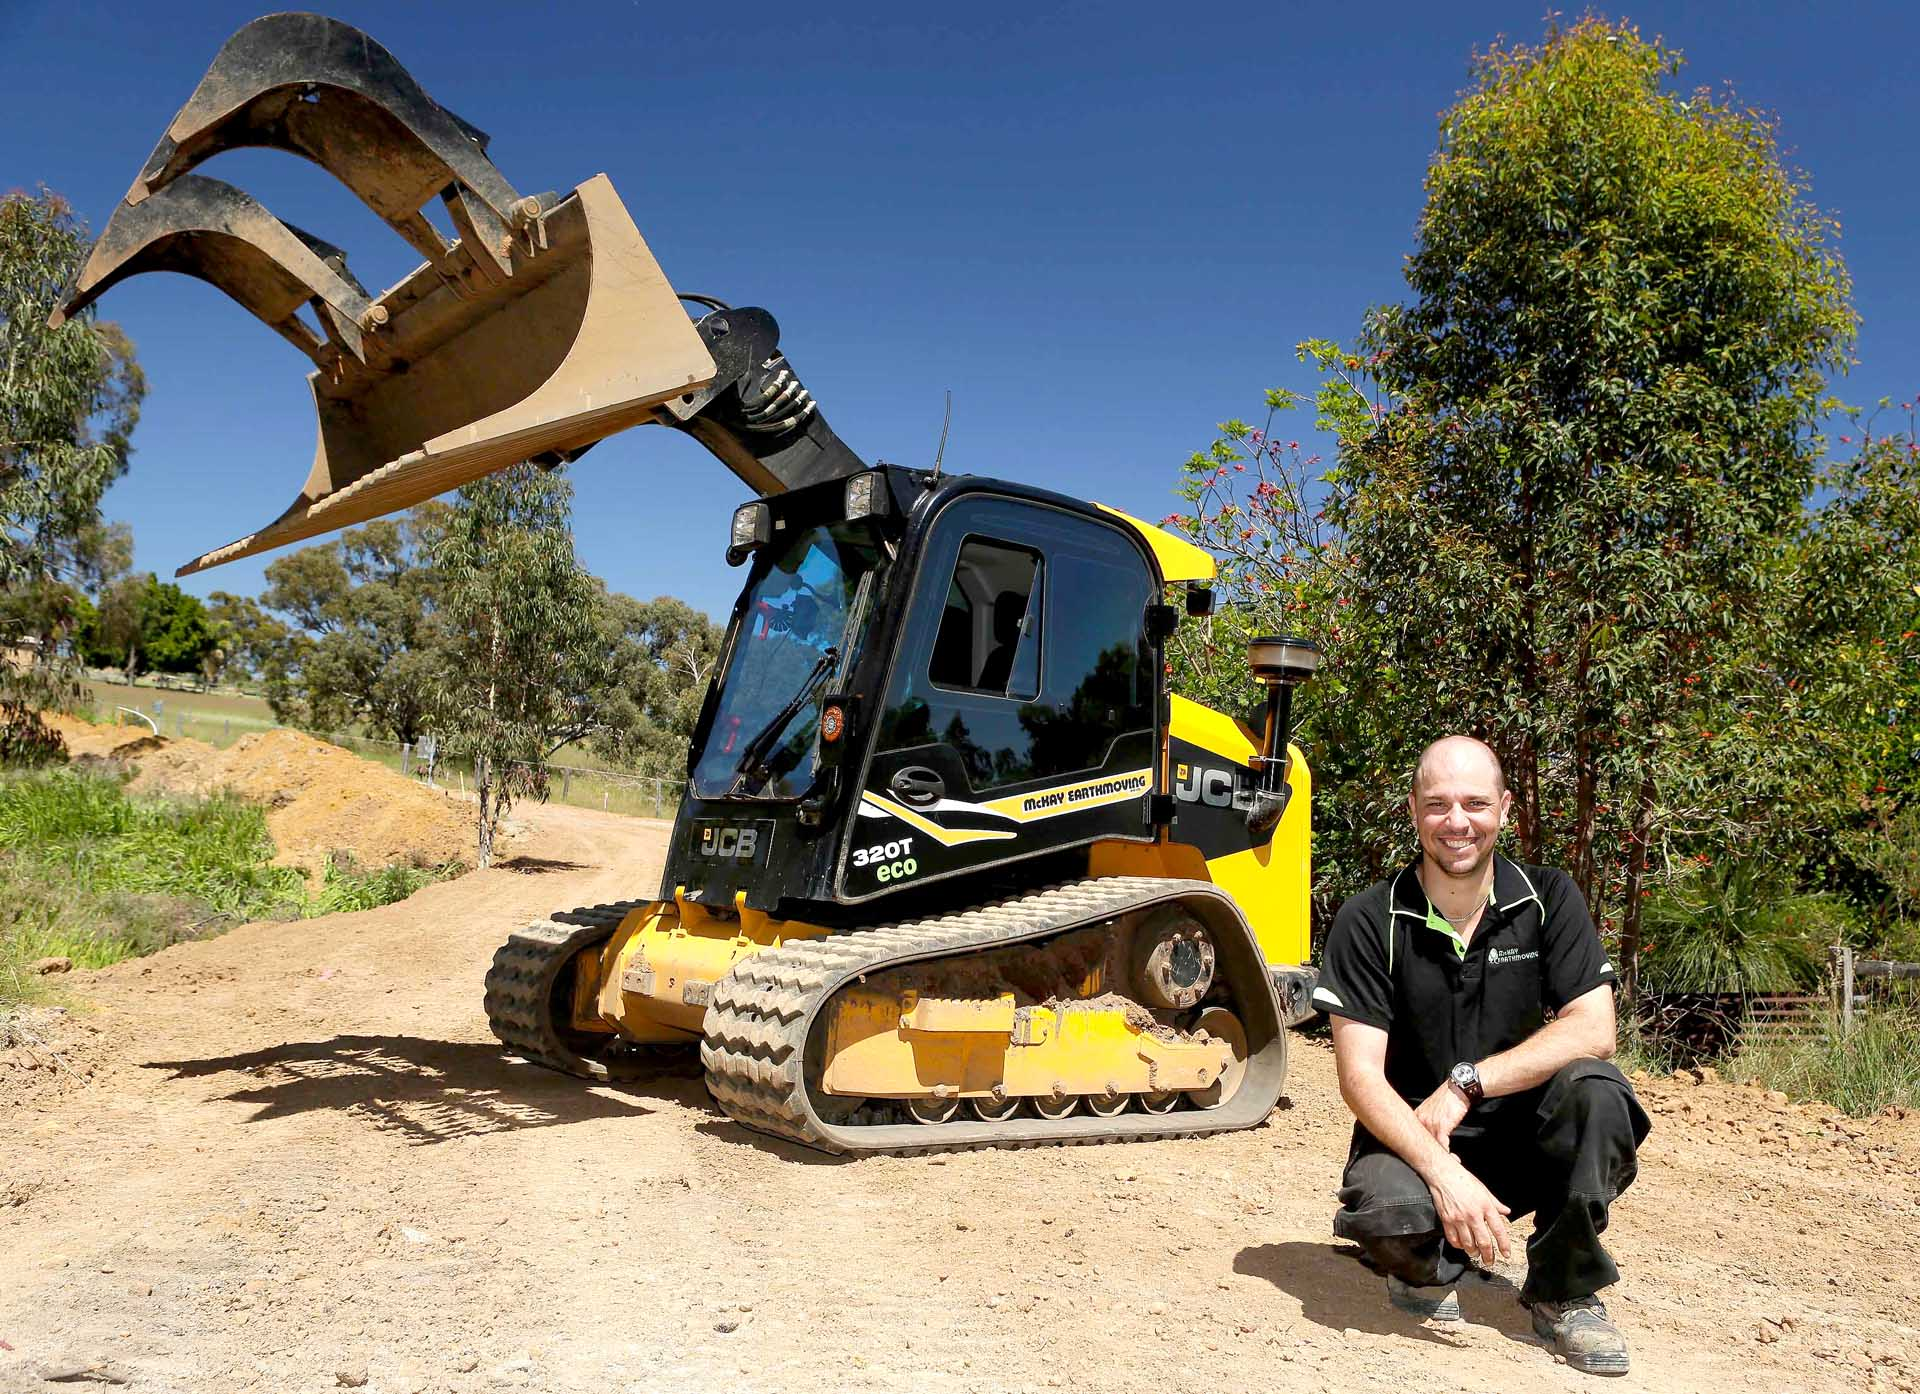 skid-steer-with-man